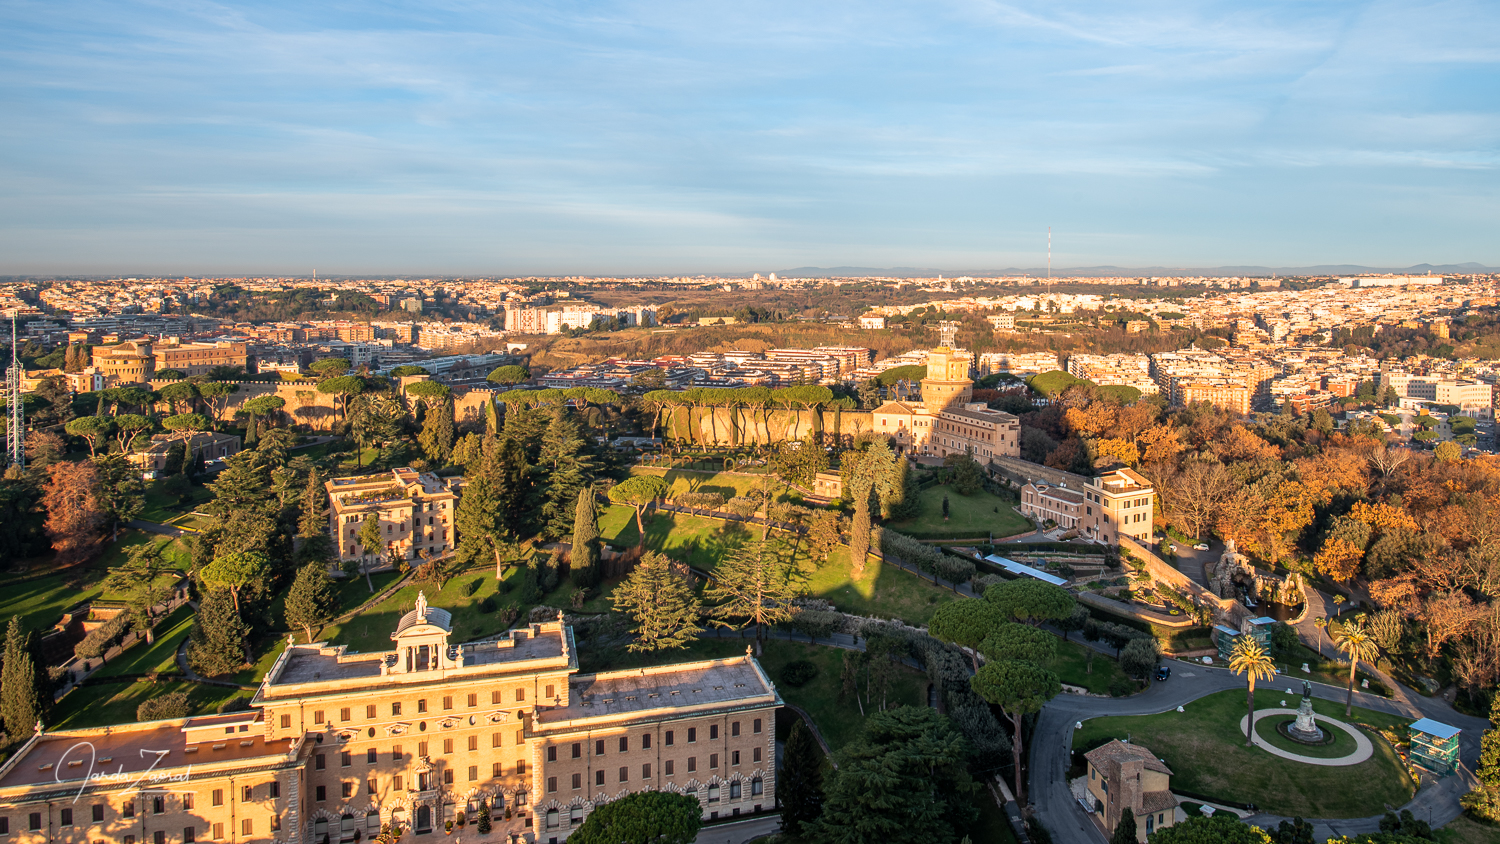 View over Vatican gardens from the Dome of st. Peter's Basilica